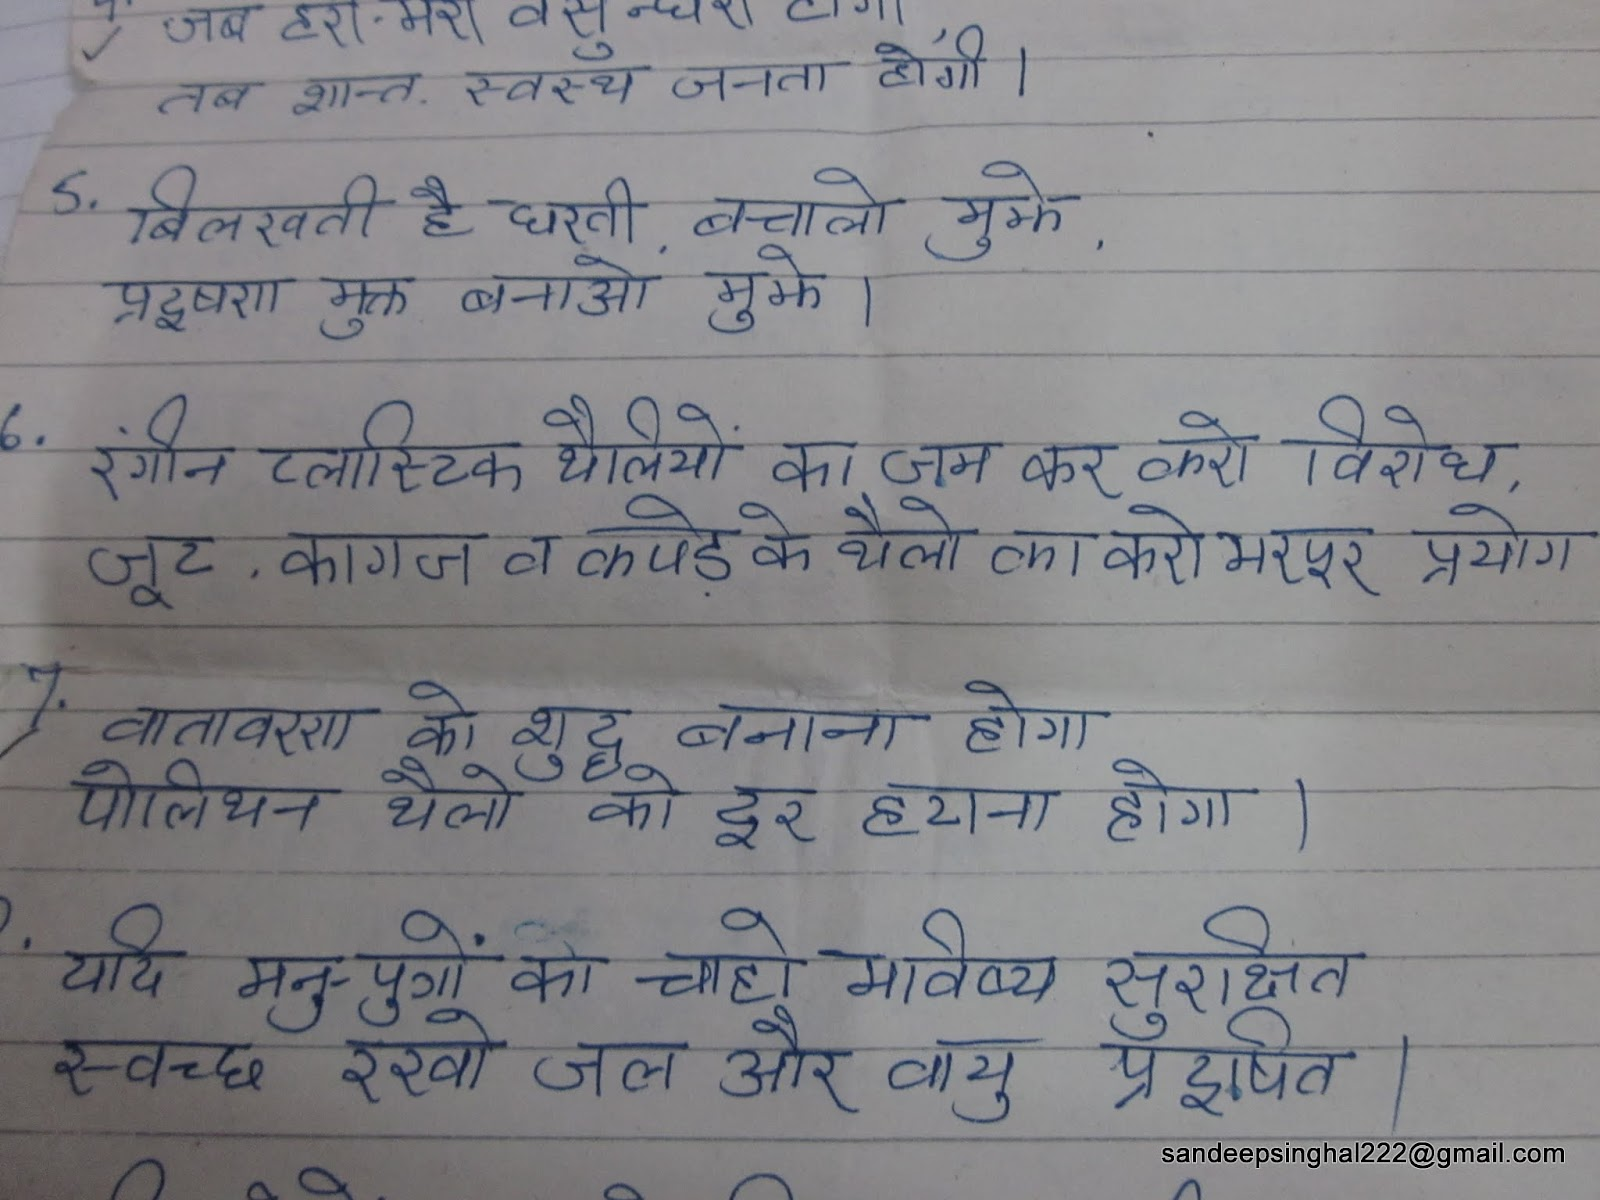 essay on save environment in hindi latest mothers day speech in hindi mothers day hindi essay slogan on environment in hindi paryavaran